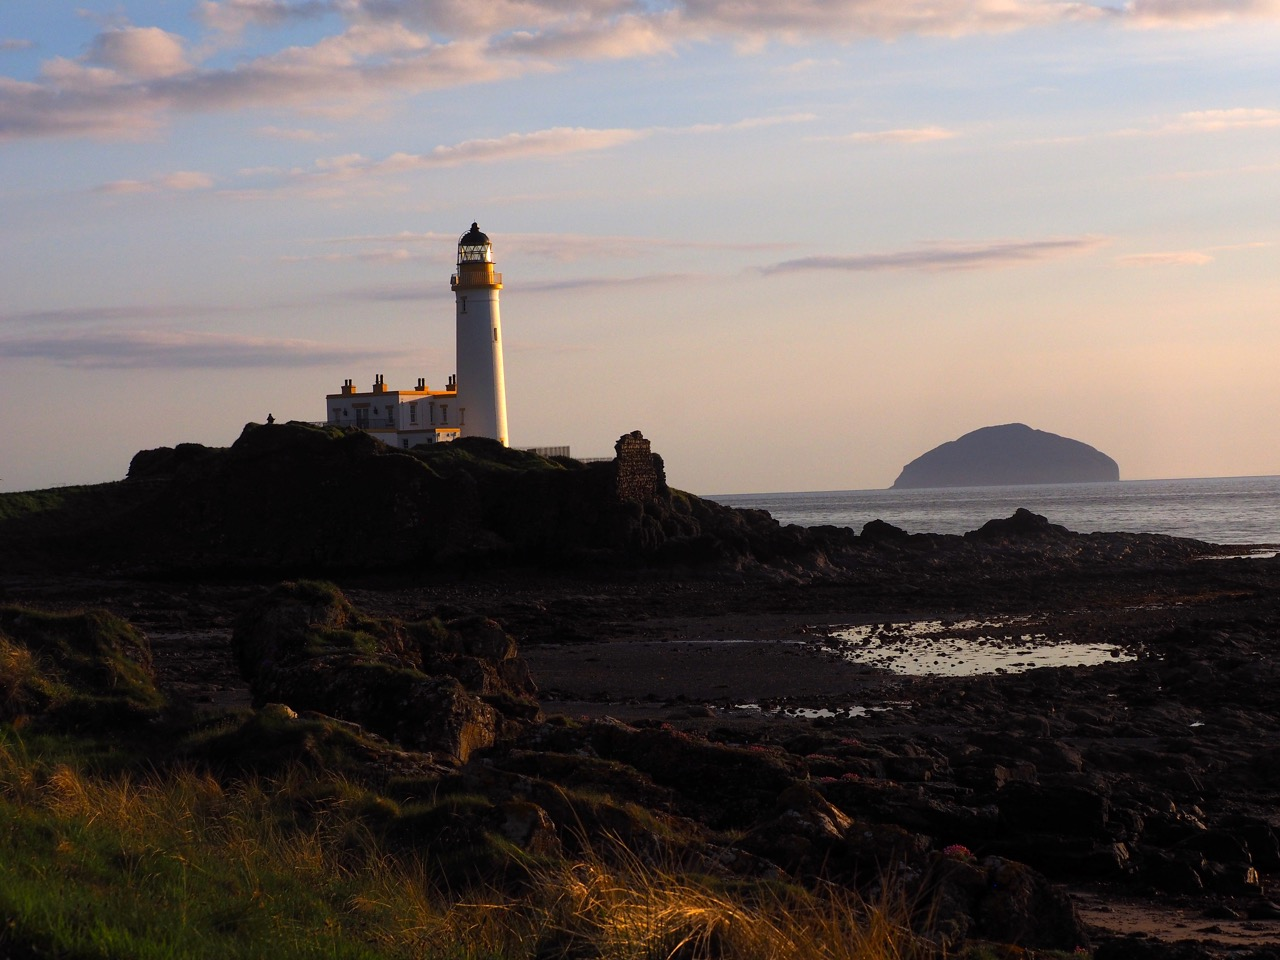 Le phare de Turnberry